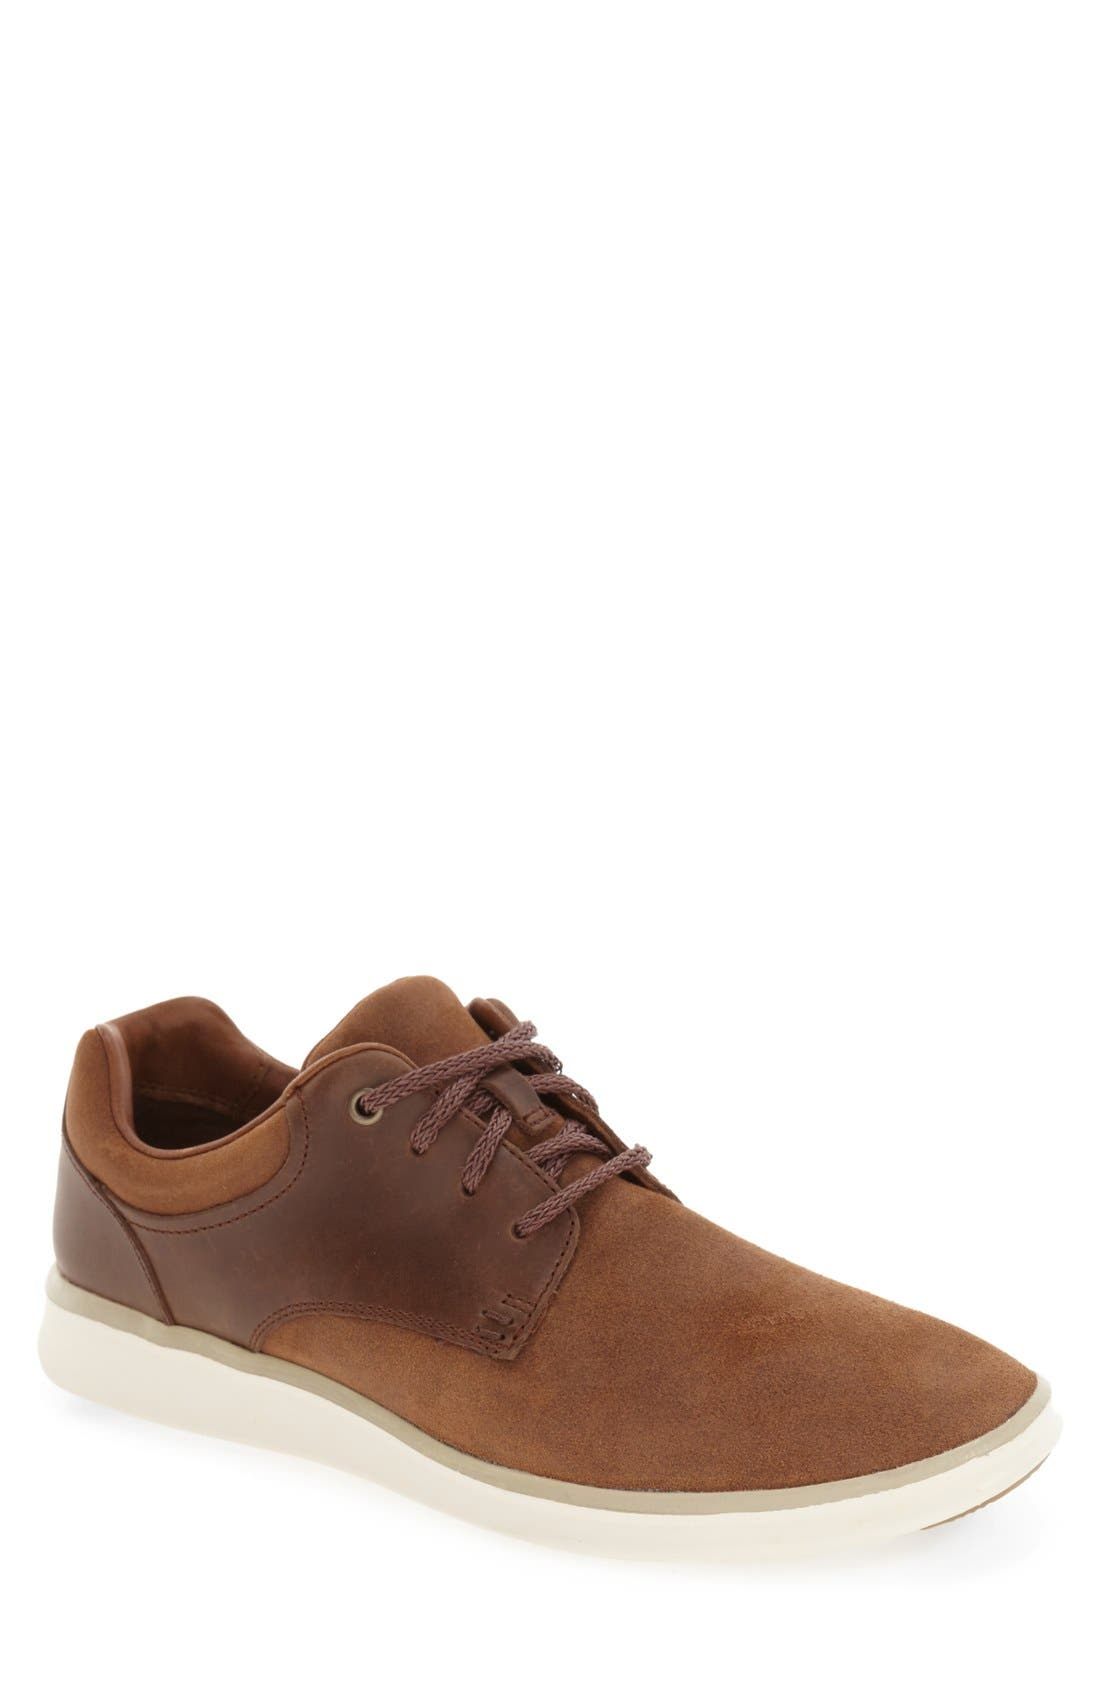 'Hepner' Sneaker,                             Main thumbnail 1, color,                             Chestnut